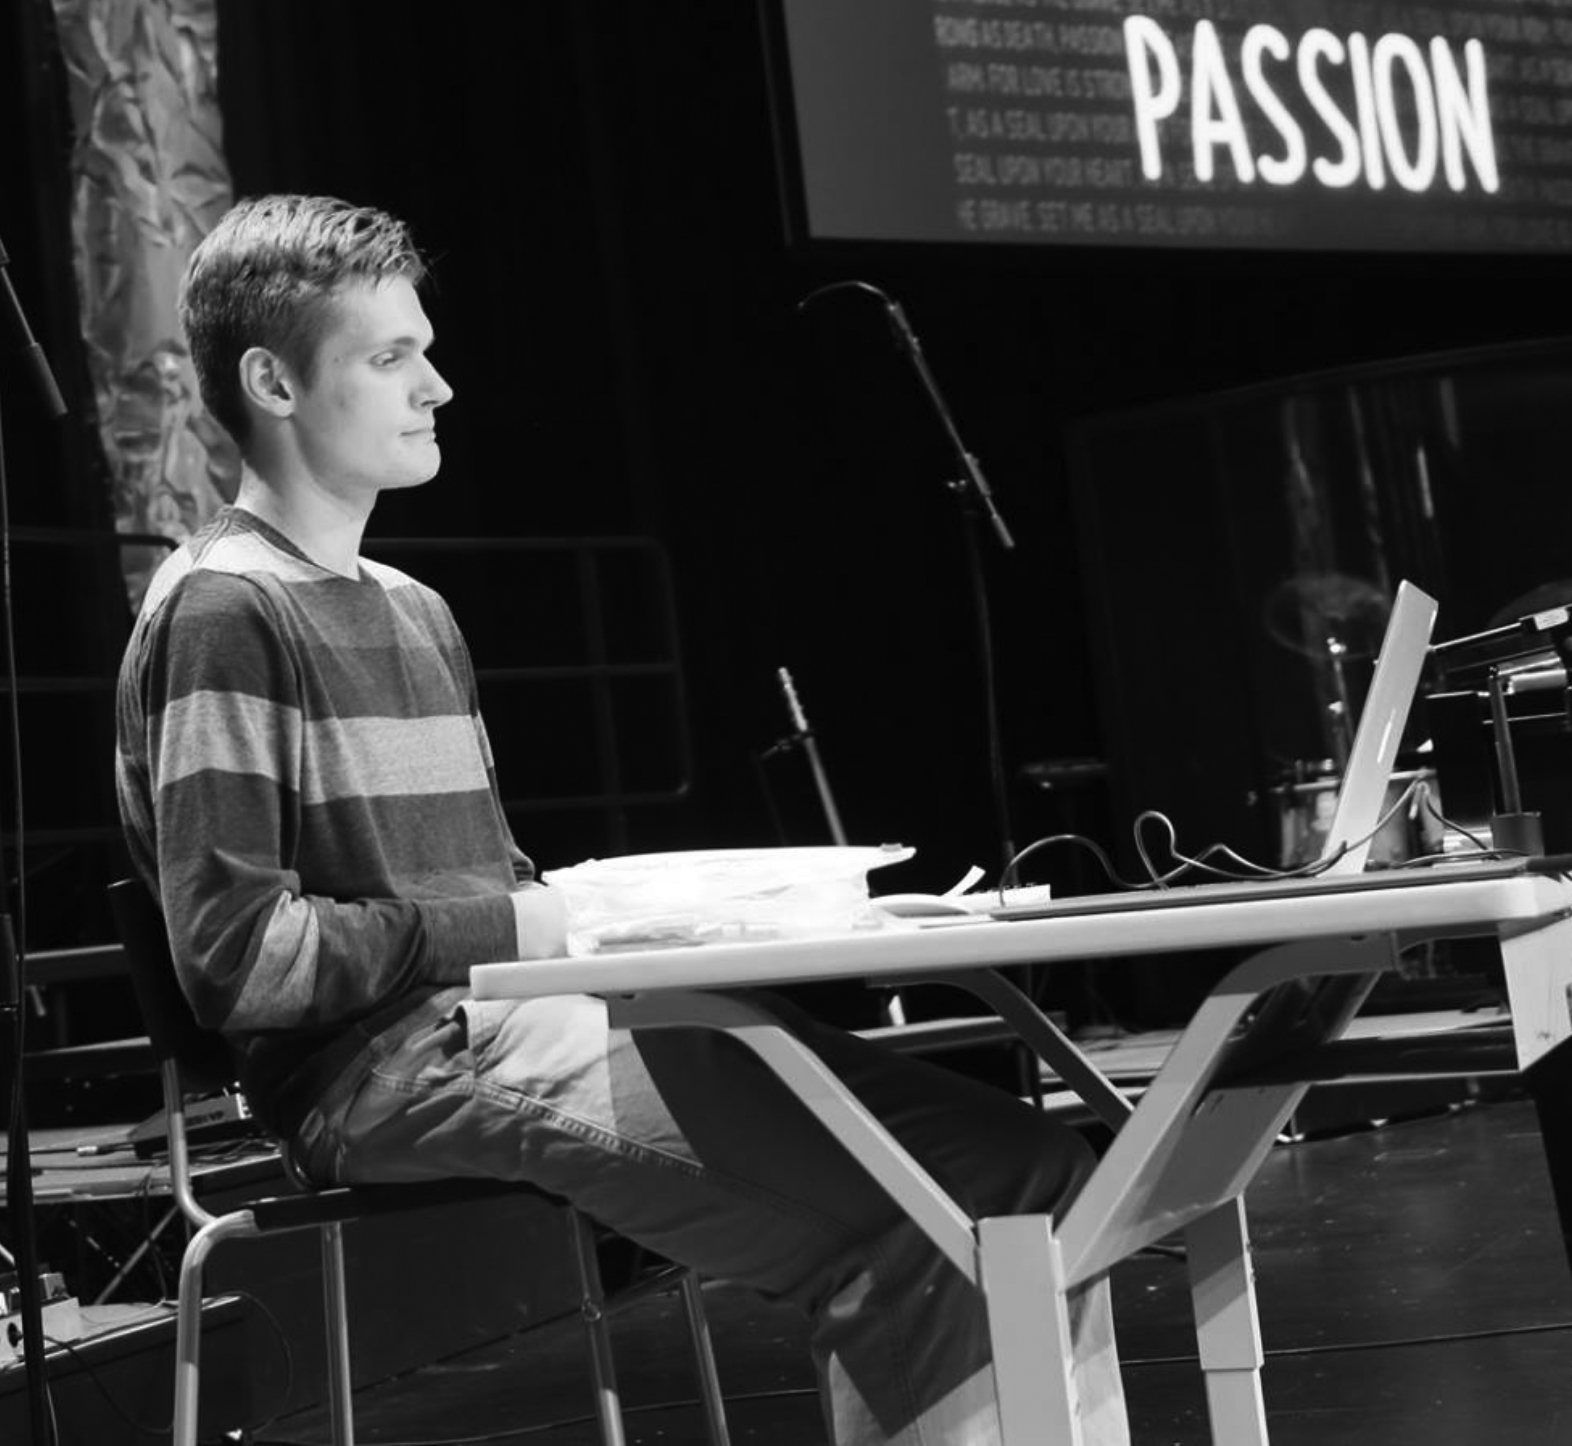 How to Serve God night_passion word.jpg